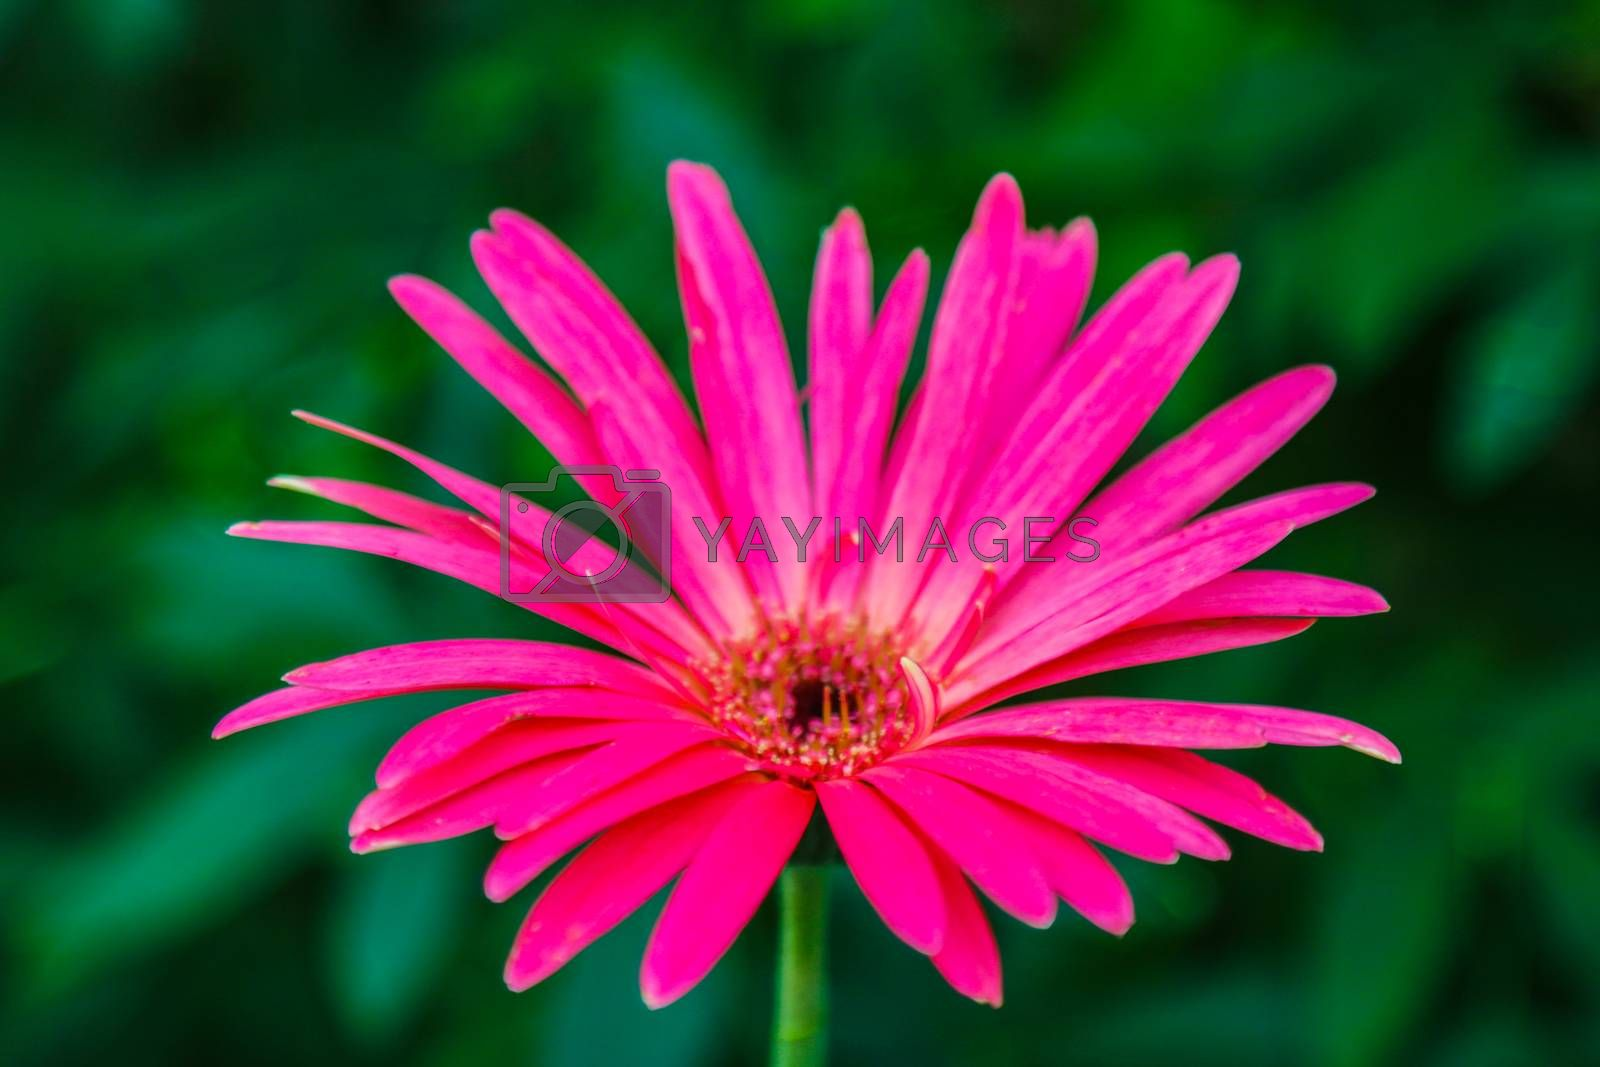 Gerbera is a genus of plants in the daisy family.Gerbera species bear a large capitulum with striking, two-lipped ray florets. by kip02kas